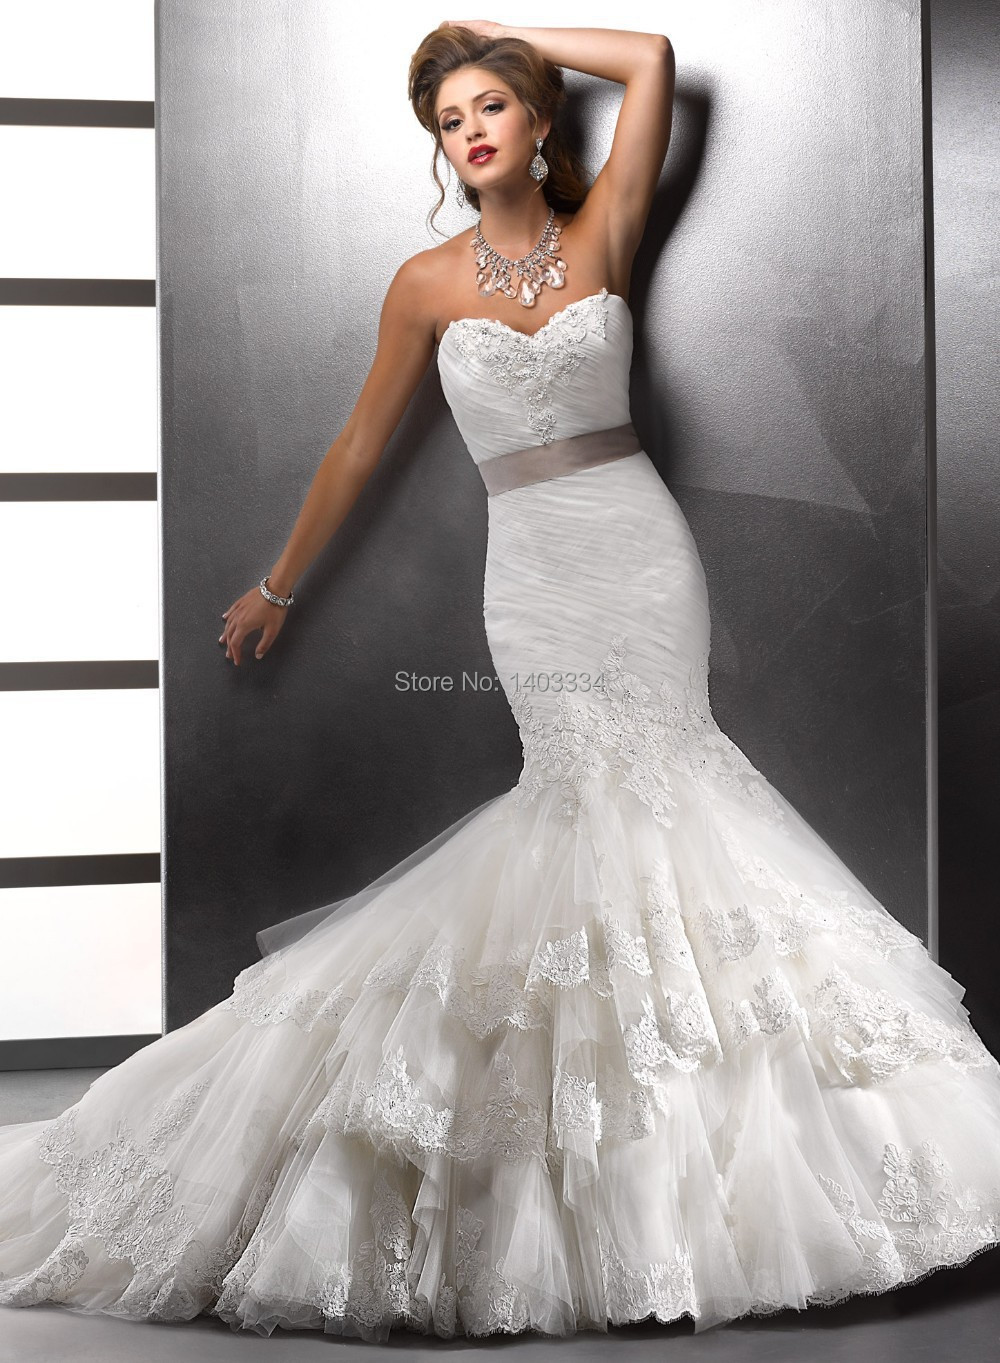 Panina Wedding Dresses Uk - Short Hair Fashions